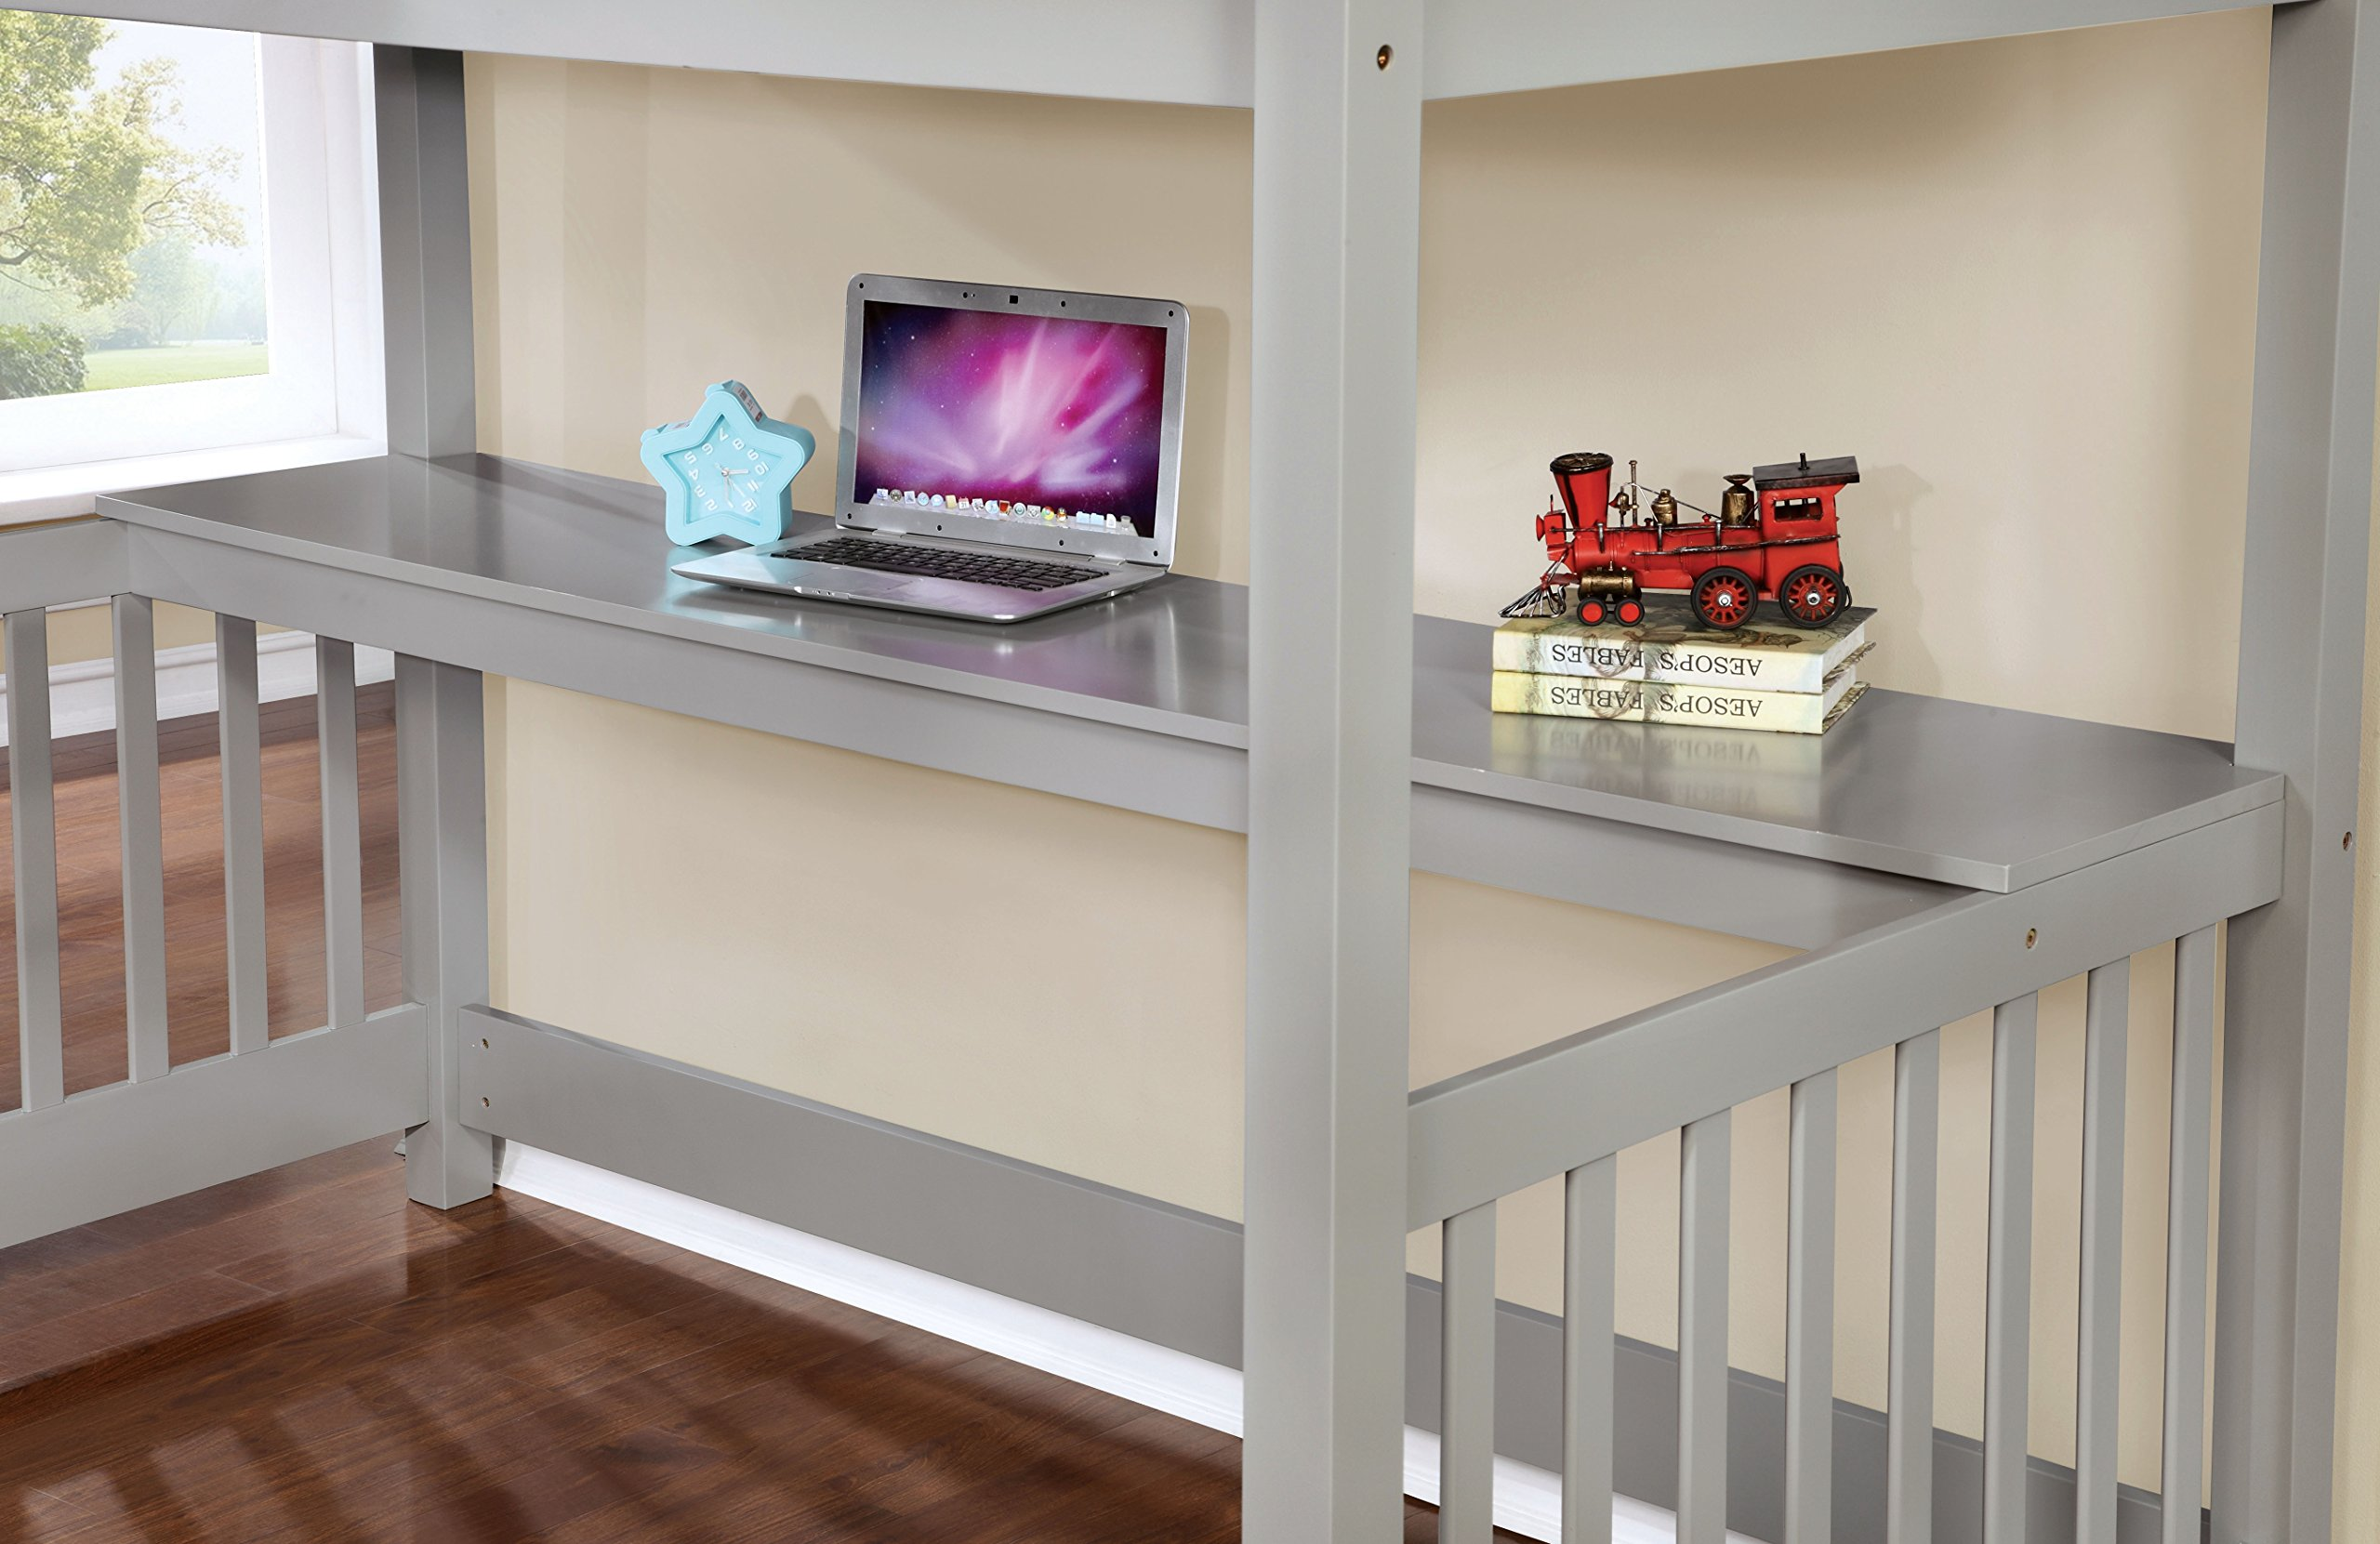 HOMES: Inside + Out IDF-BK614 Duncan Bunk Bed Childrens Frames, Twin/Twin